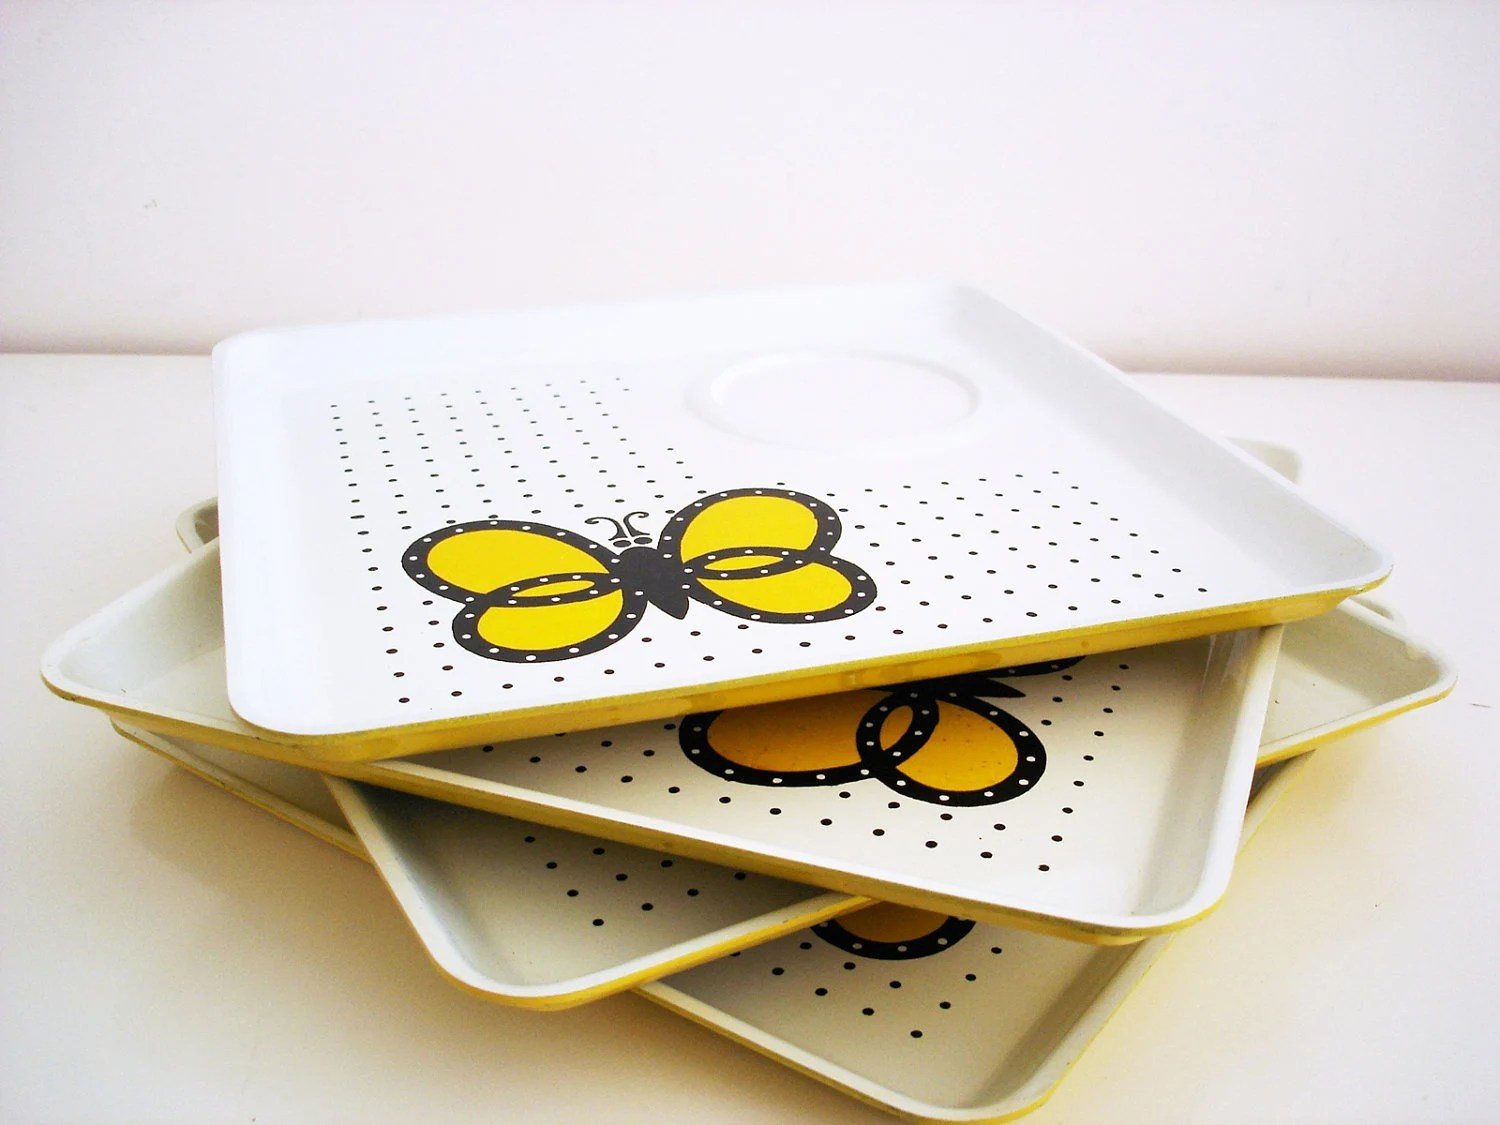 Vintage 70s snack trays/ butterfly polka dots/ set of 4/ mustard yellow black polka dots white/ Cho-Cho-San by JSC/ Made in Japan/ melamine - Vintagiality